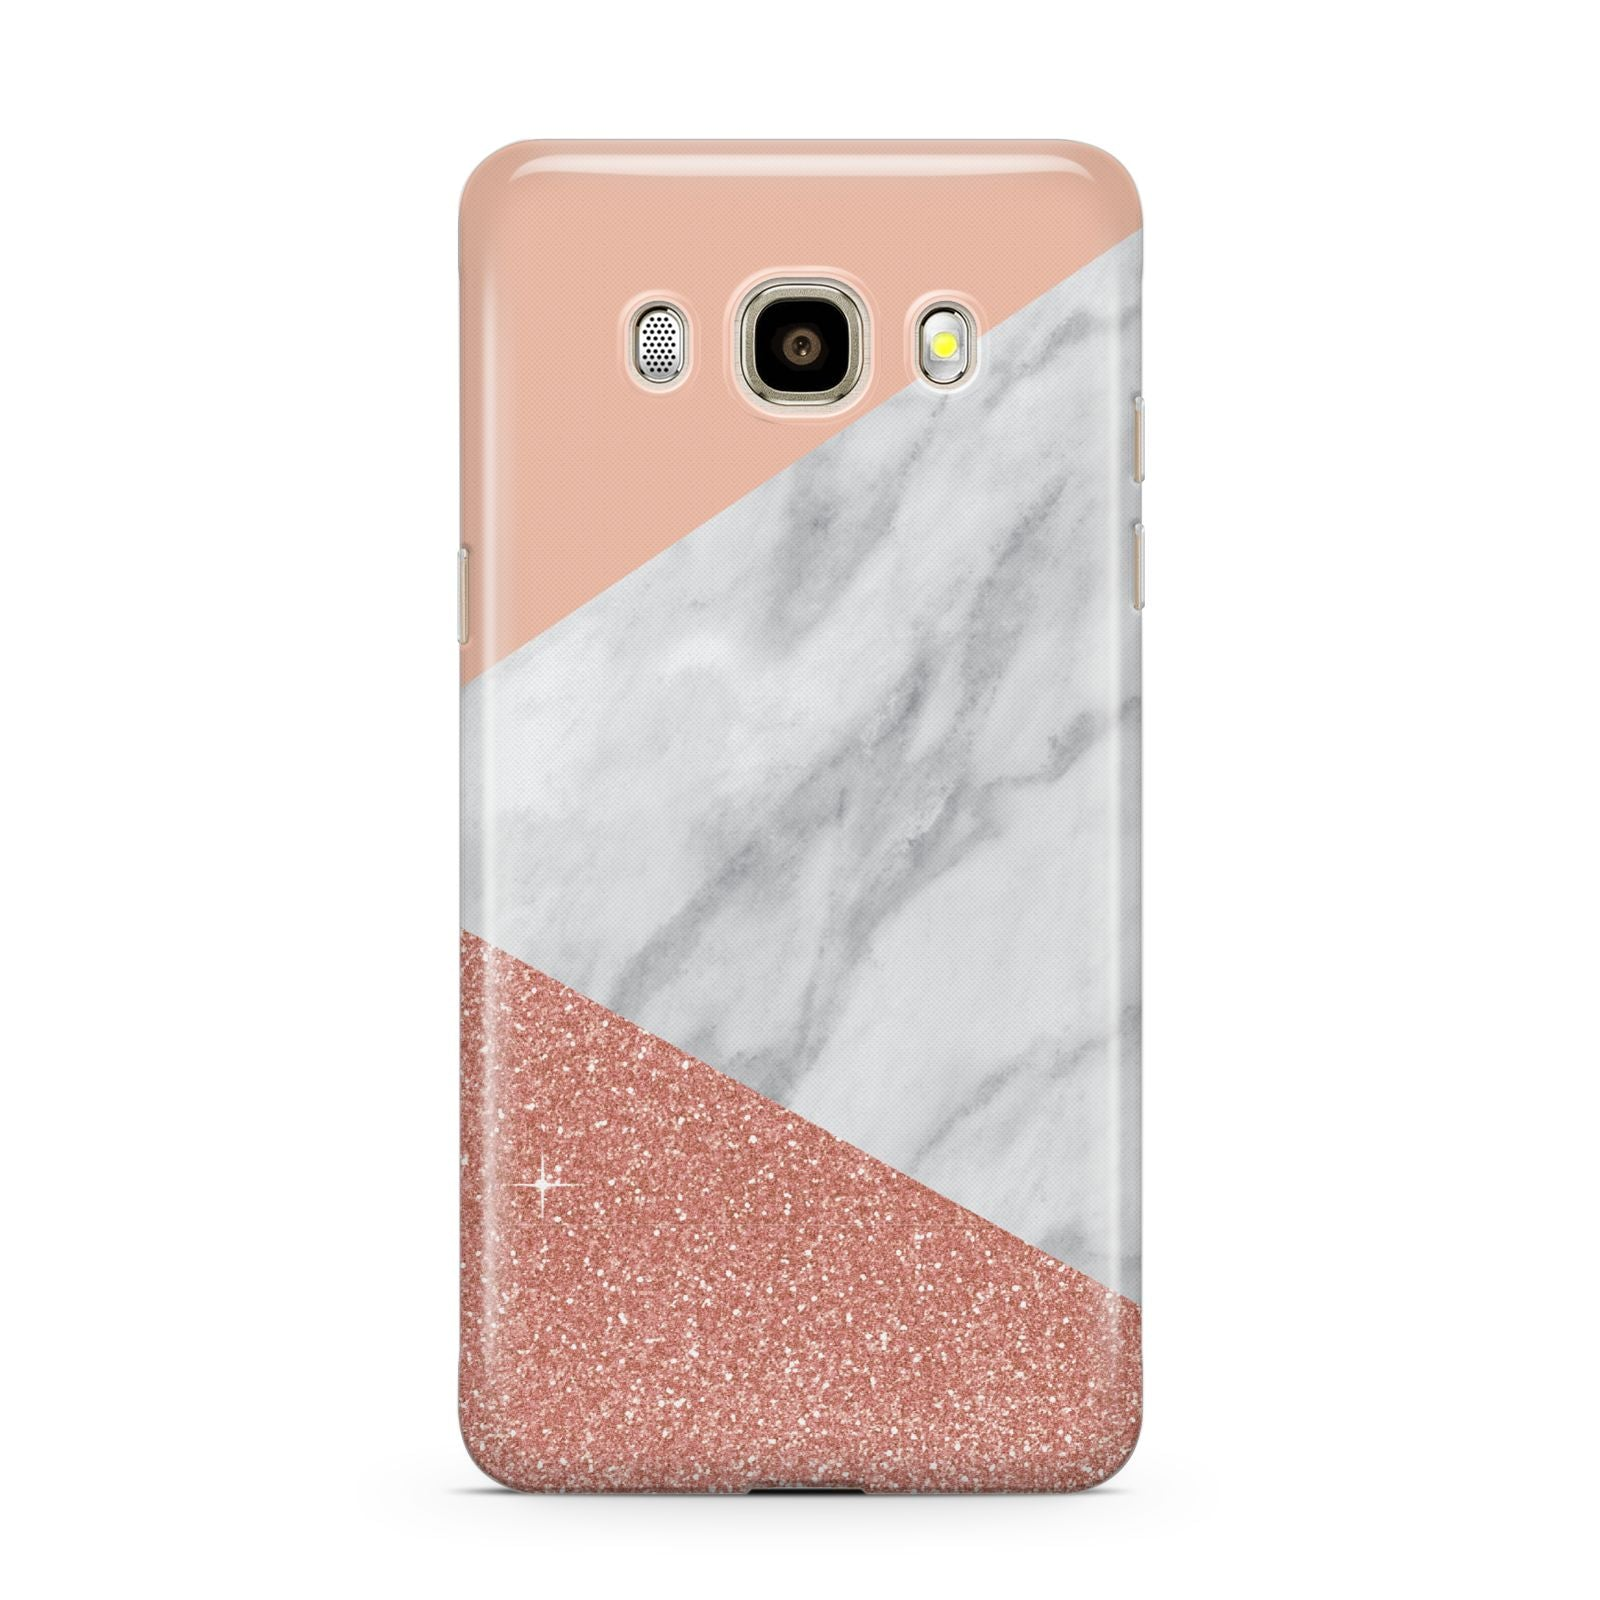 Marble White Rose Gold Samsung Galaxy J7 2016 Case on gold phone